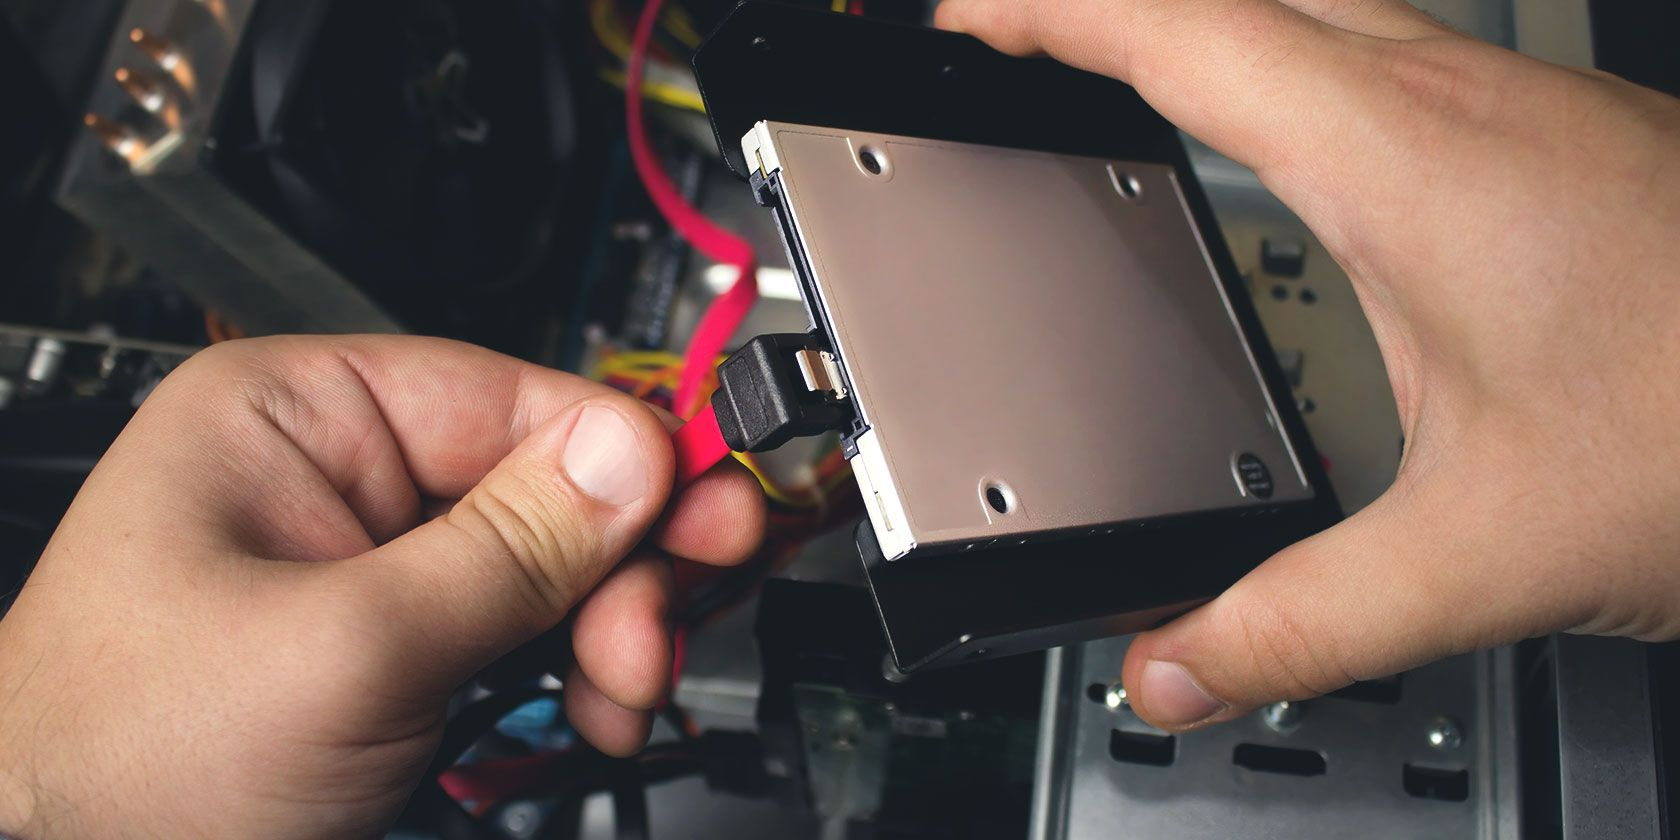 Should You Upgrade to NVMe? 6 Reasons to Stick With SATA SSDs